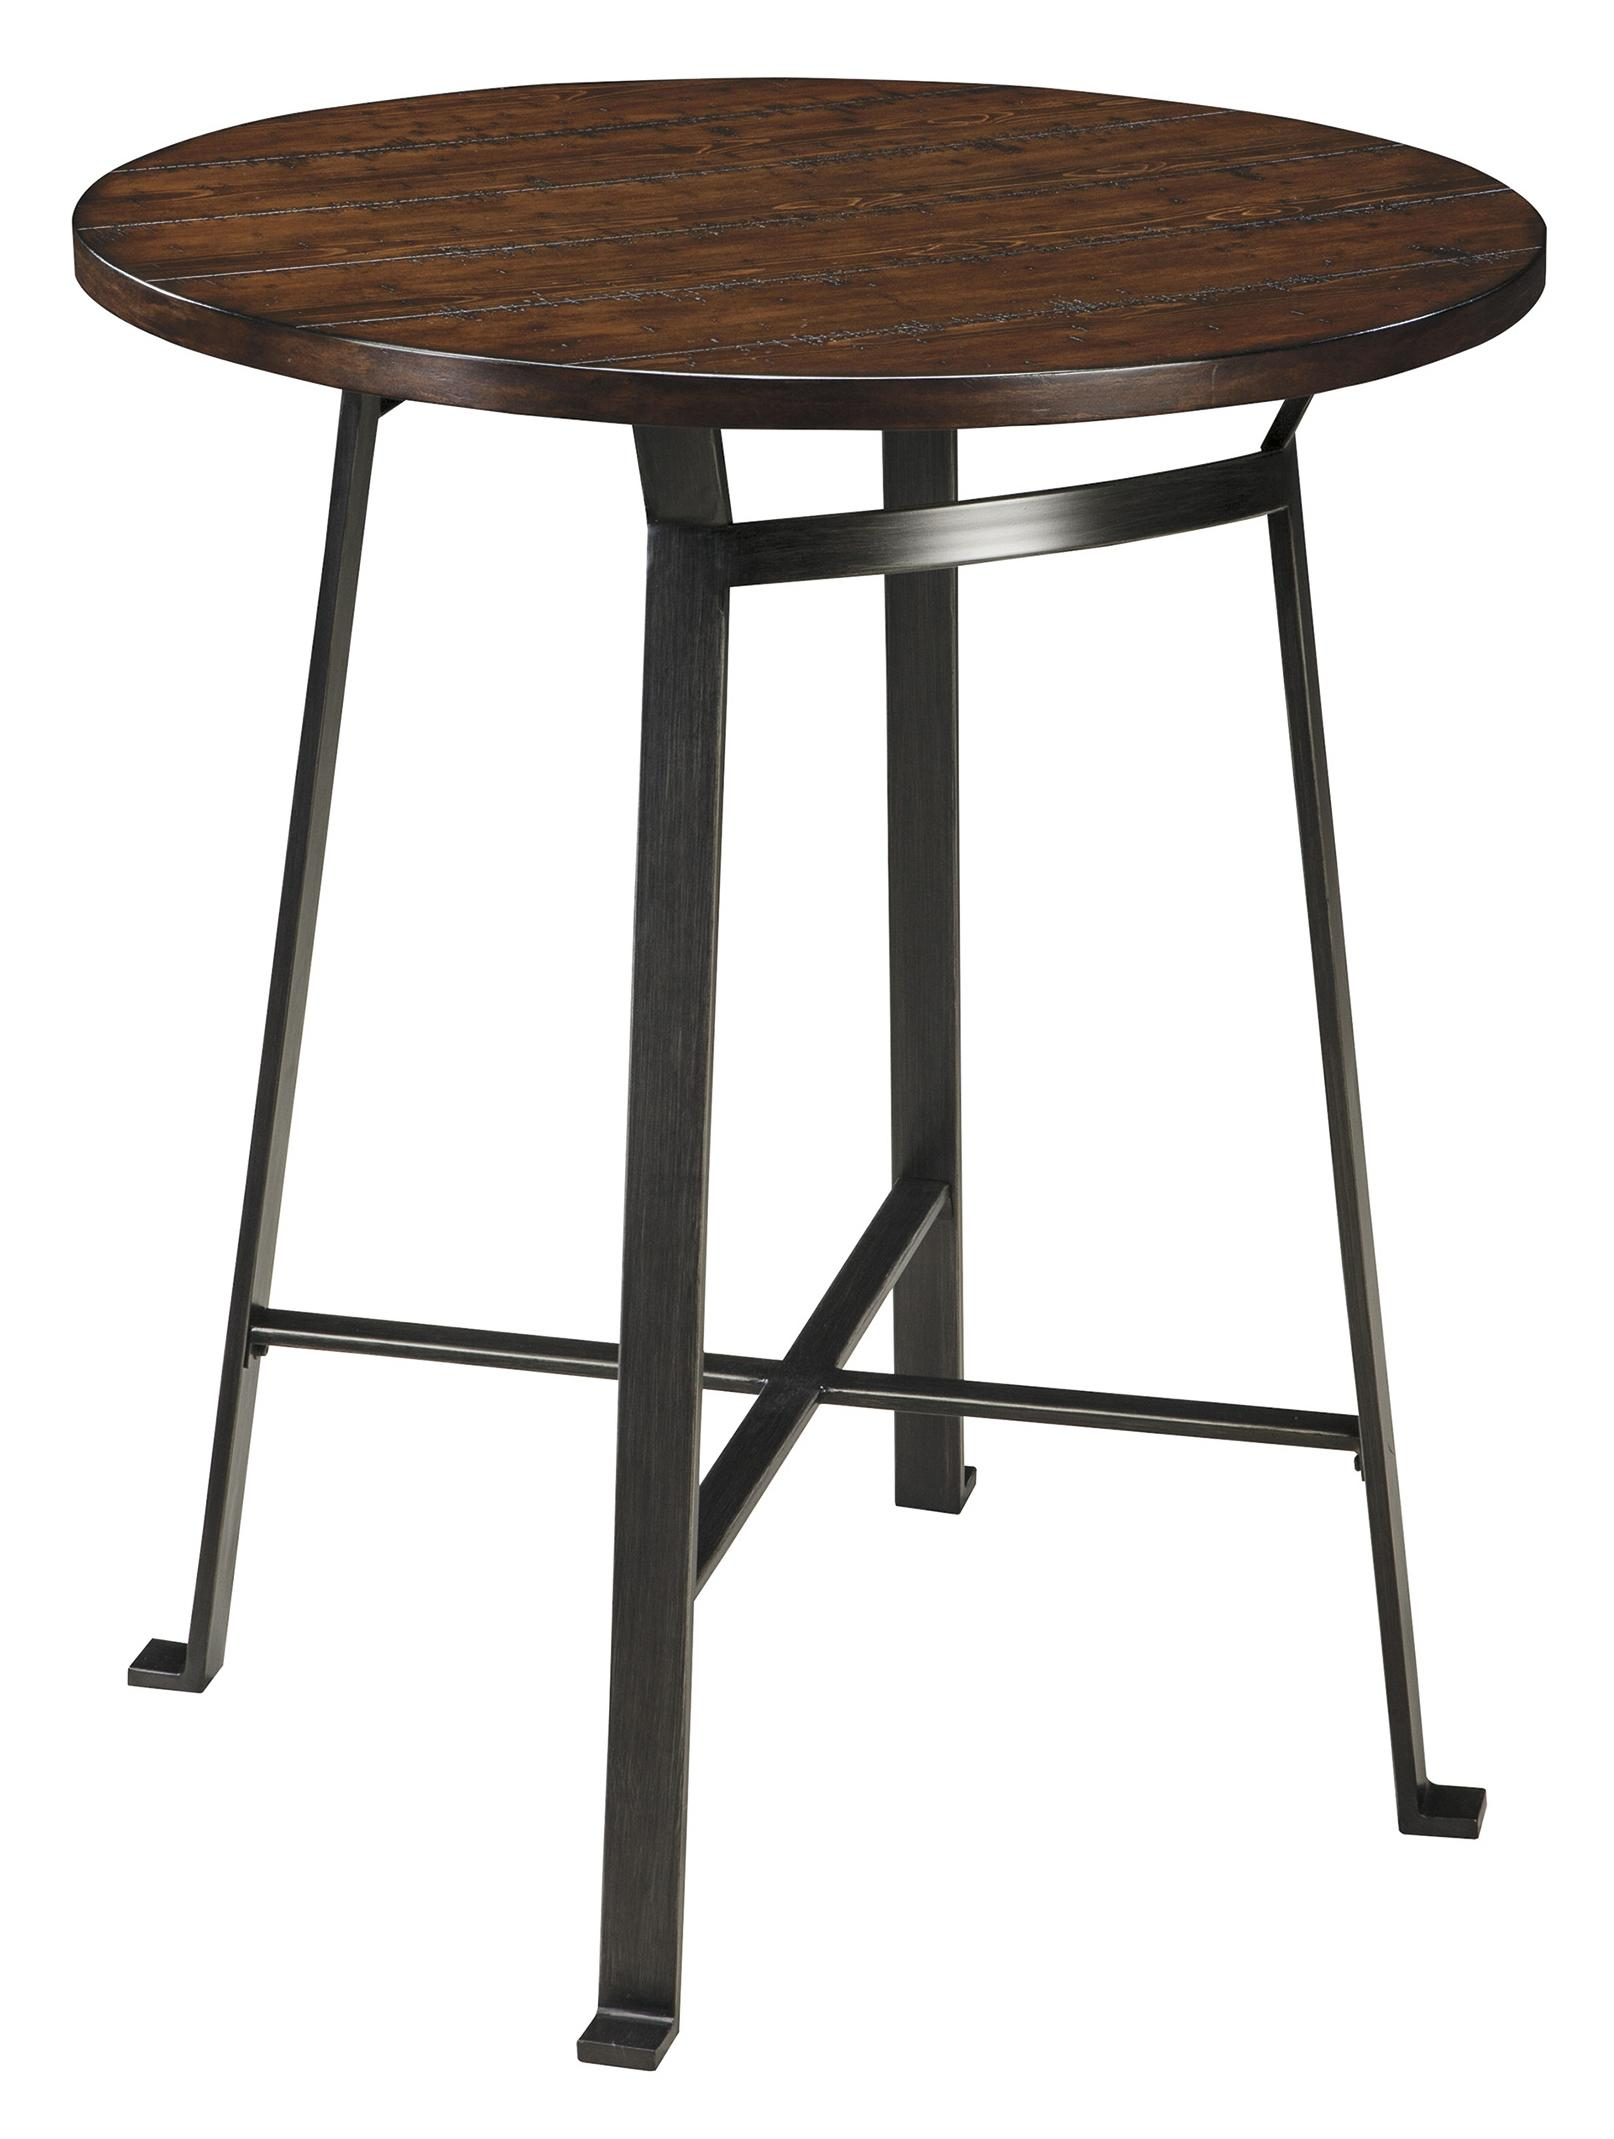 Signature Design by Ashley Challiman Round Dining Room Bar Table - Item Number: D307-12